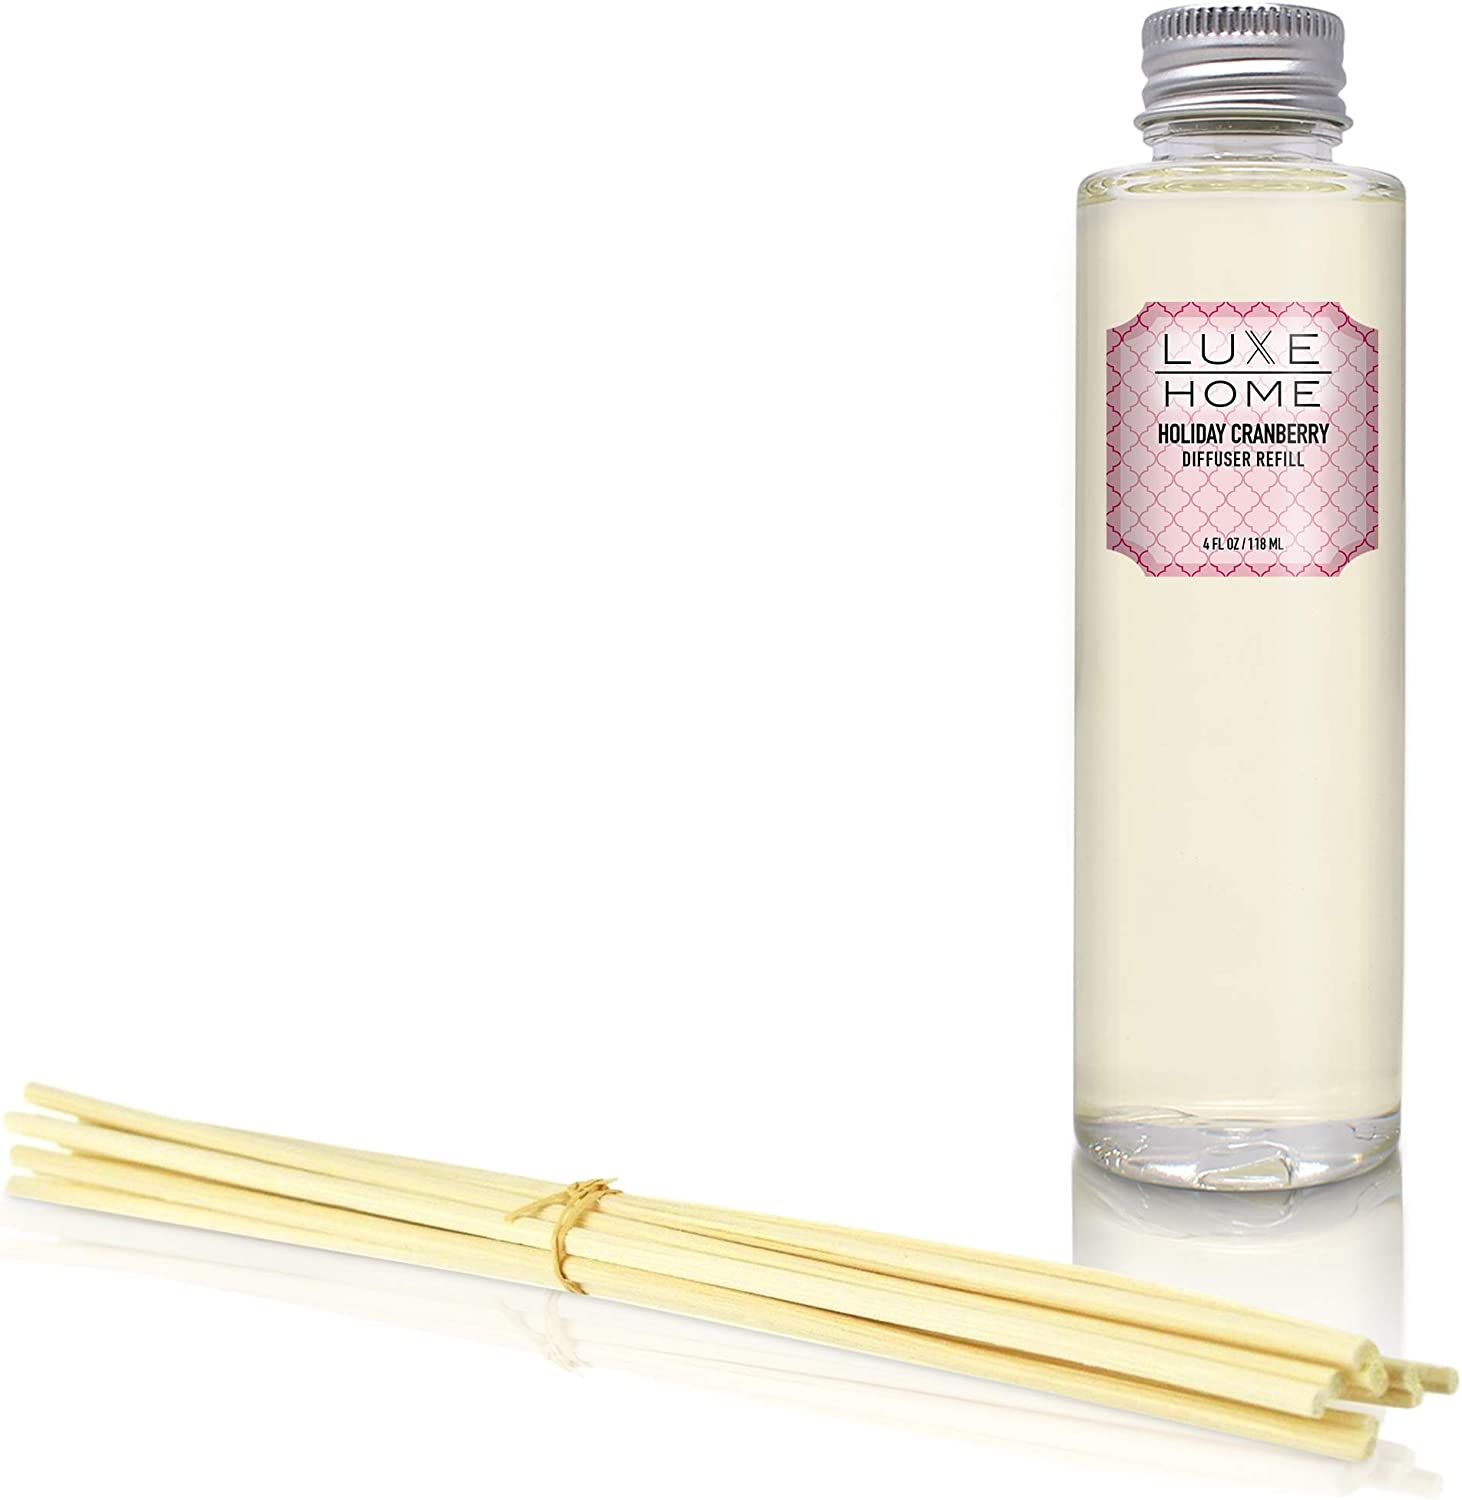 Luxe Home Cranberry Reed Diffuser Refill Oil with Sticks | Christmas Fragrance Oil & Home Decor | Black Currant, Cinnamon & Sandalwood | Liquid Air Freshener | Includes Replacement Reeds